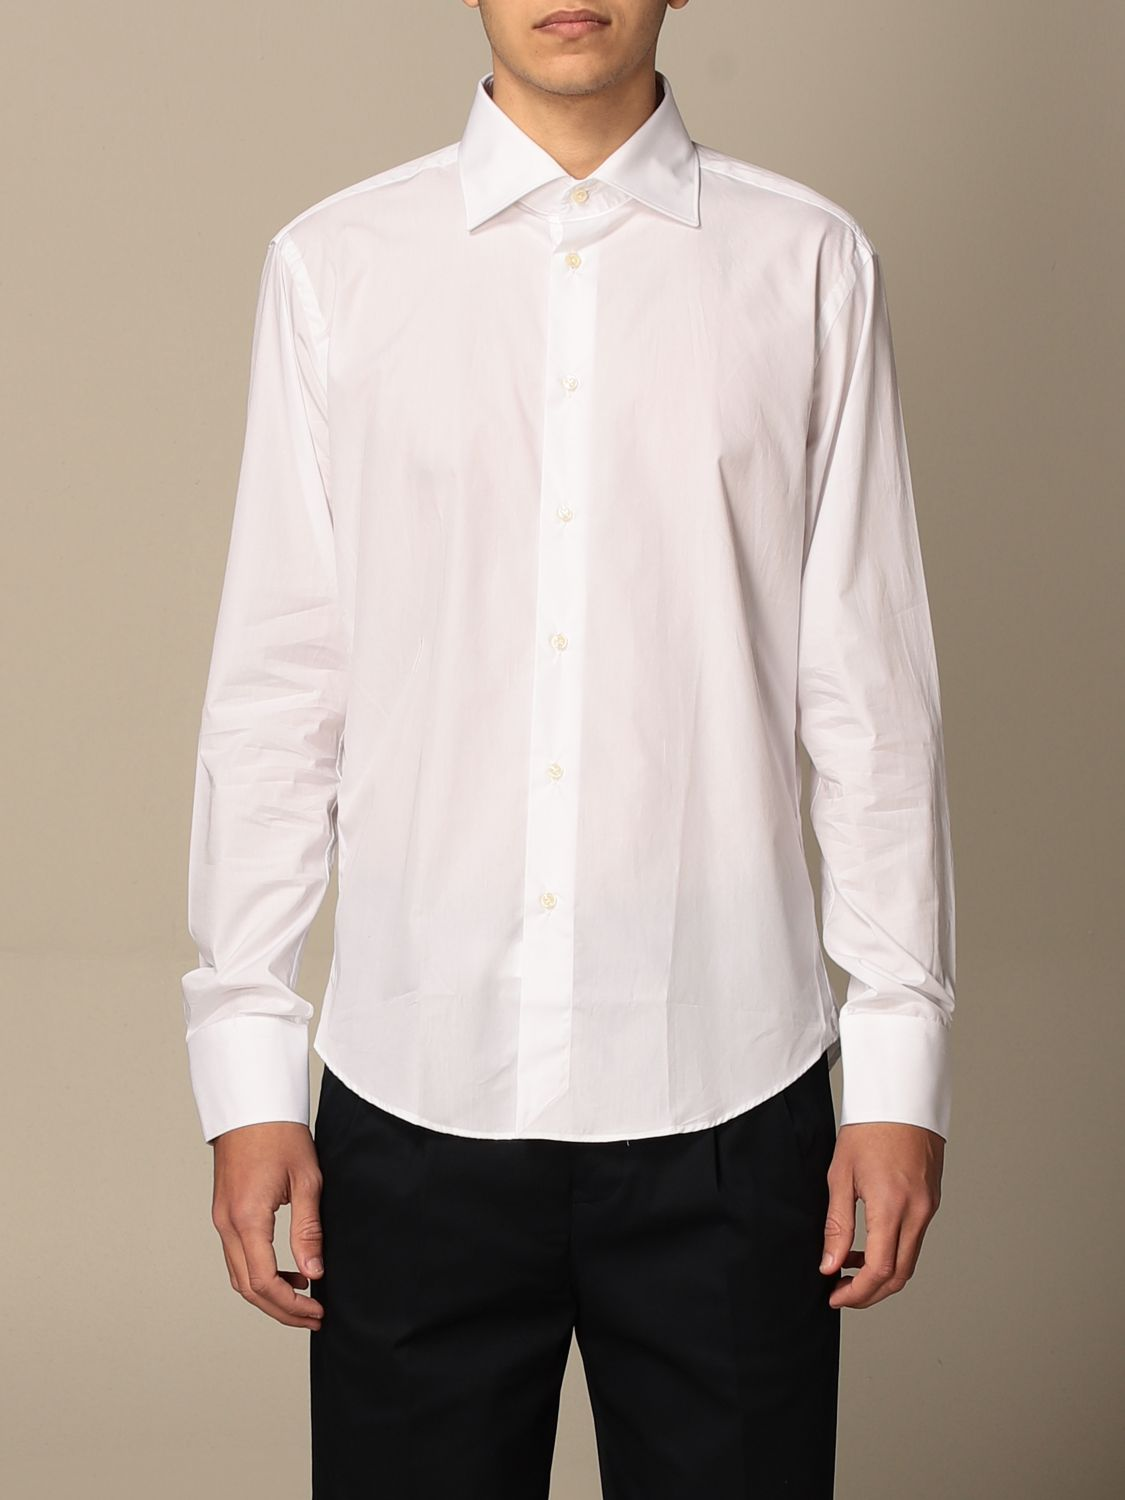 Shirt Brian Dales Camicie: Brian Dales Tailored Shirt Shirts with Italian collar in cotton white 1